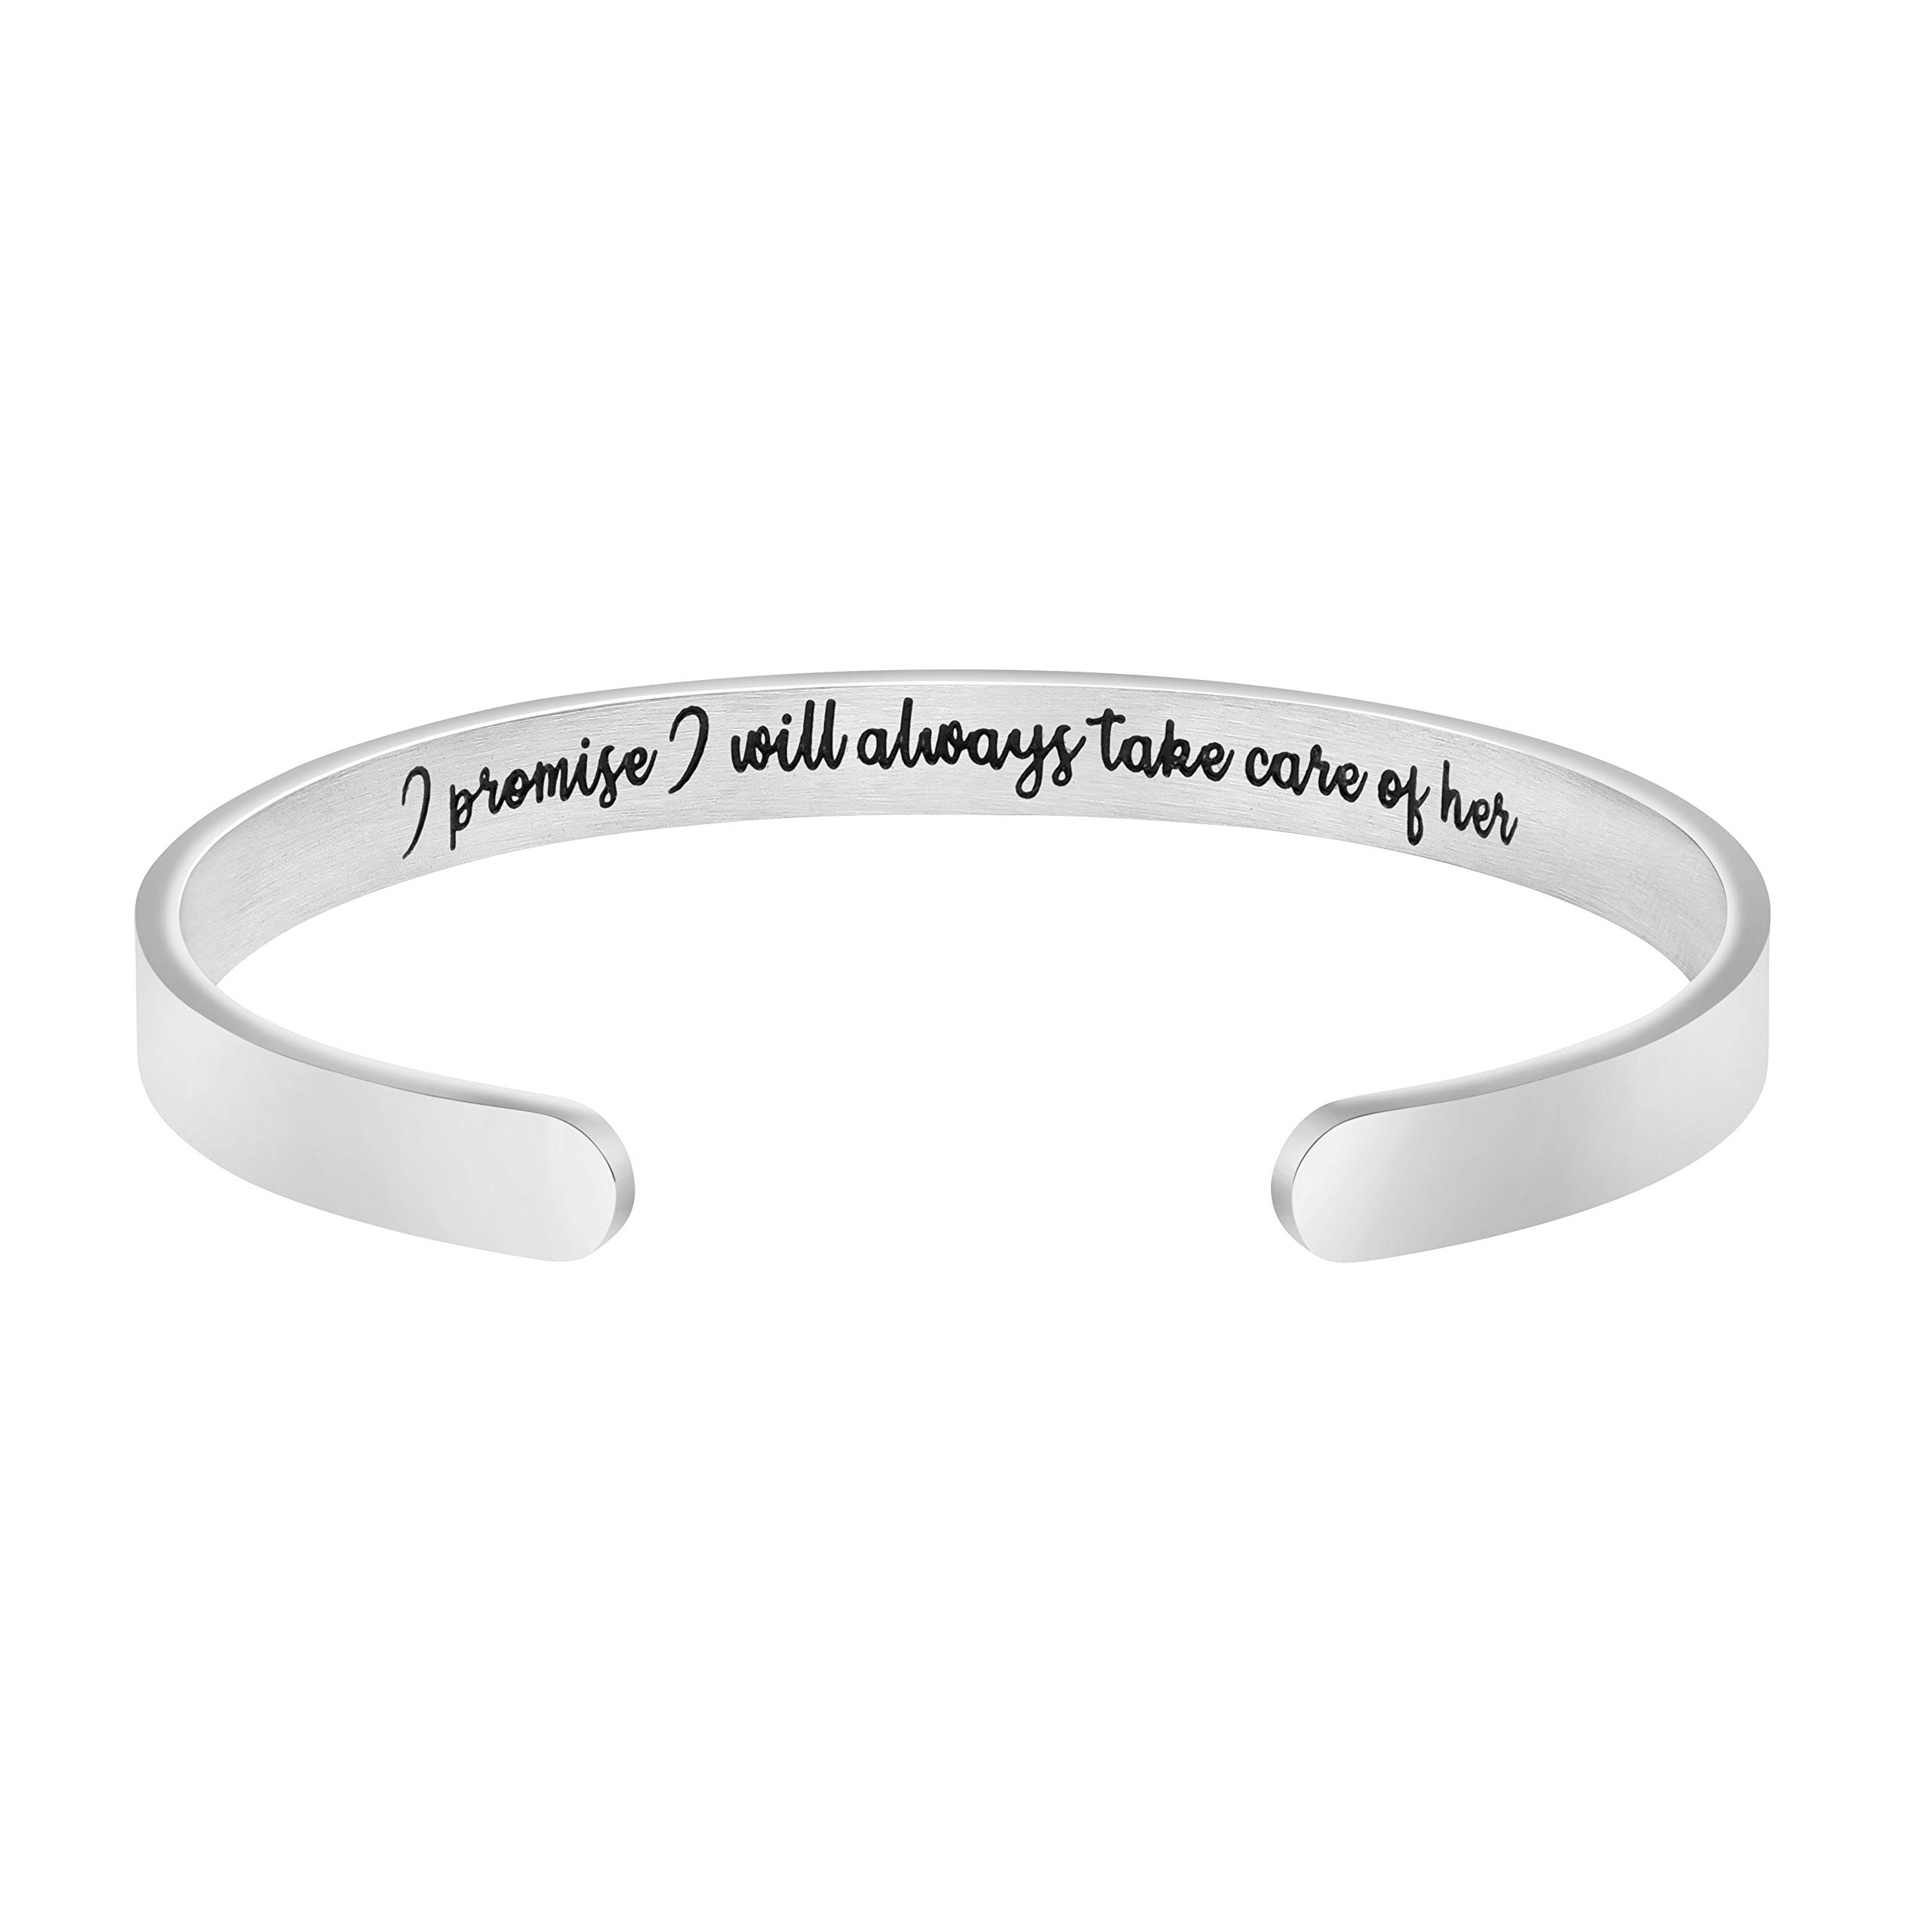 I Will Always Take Care of Her Cuff Bracelet Weeding Day Gift for Mother in Law Mom